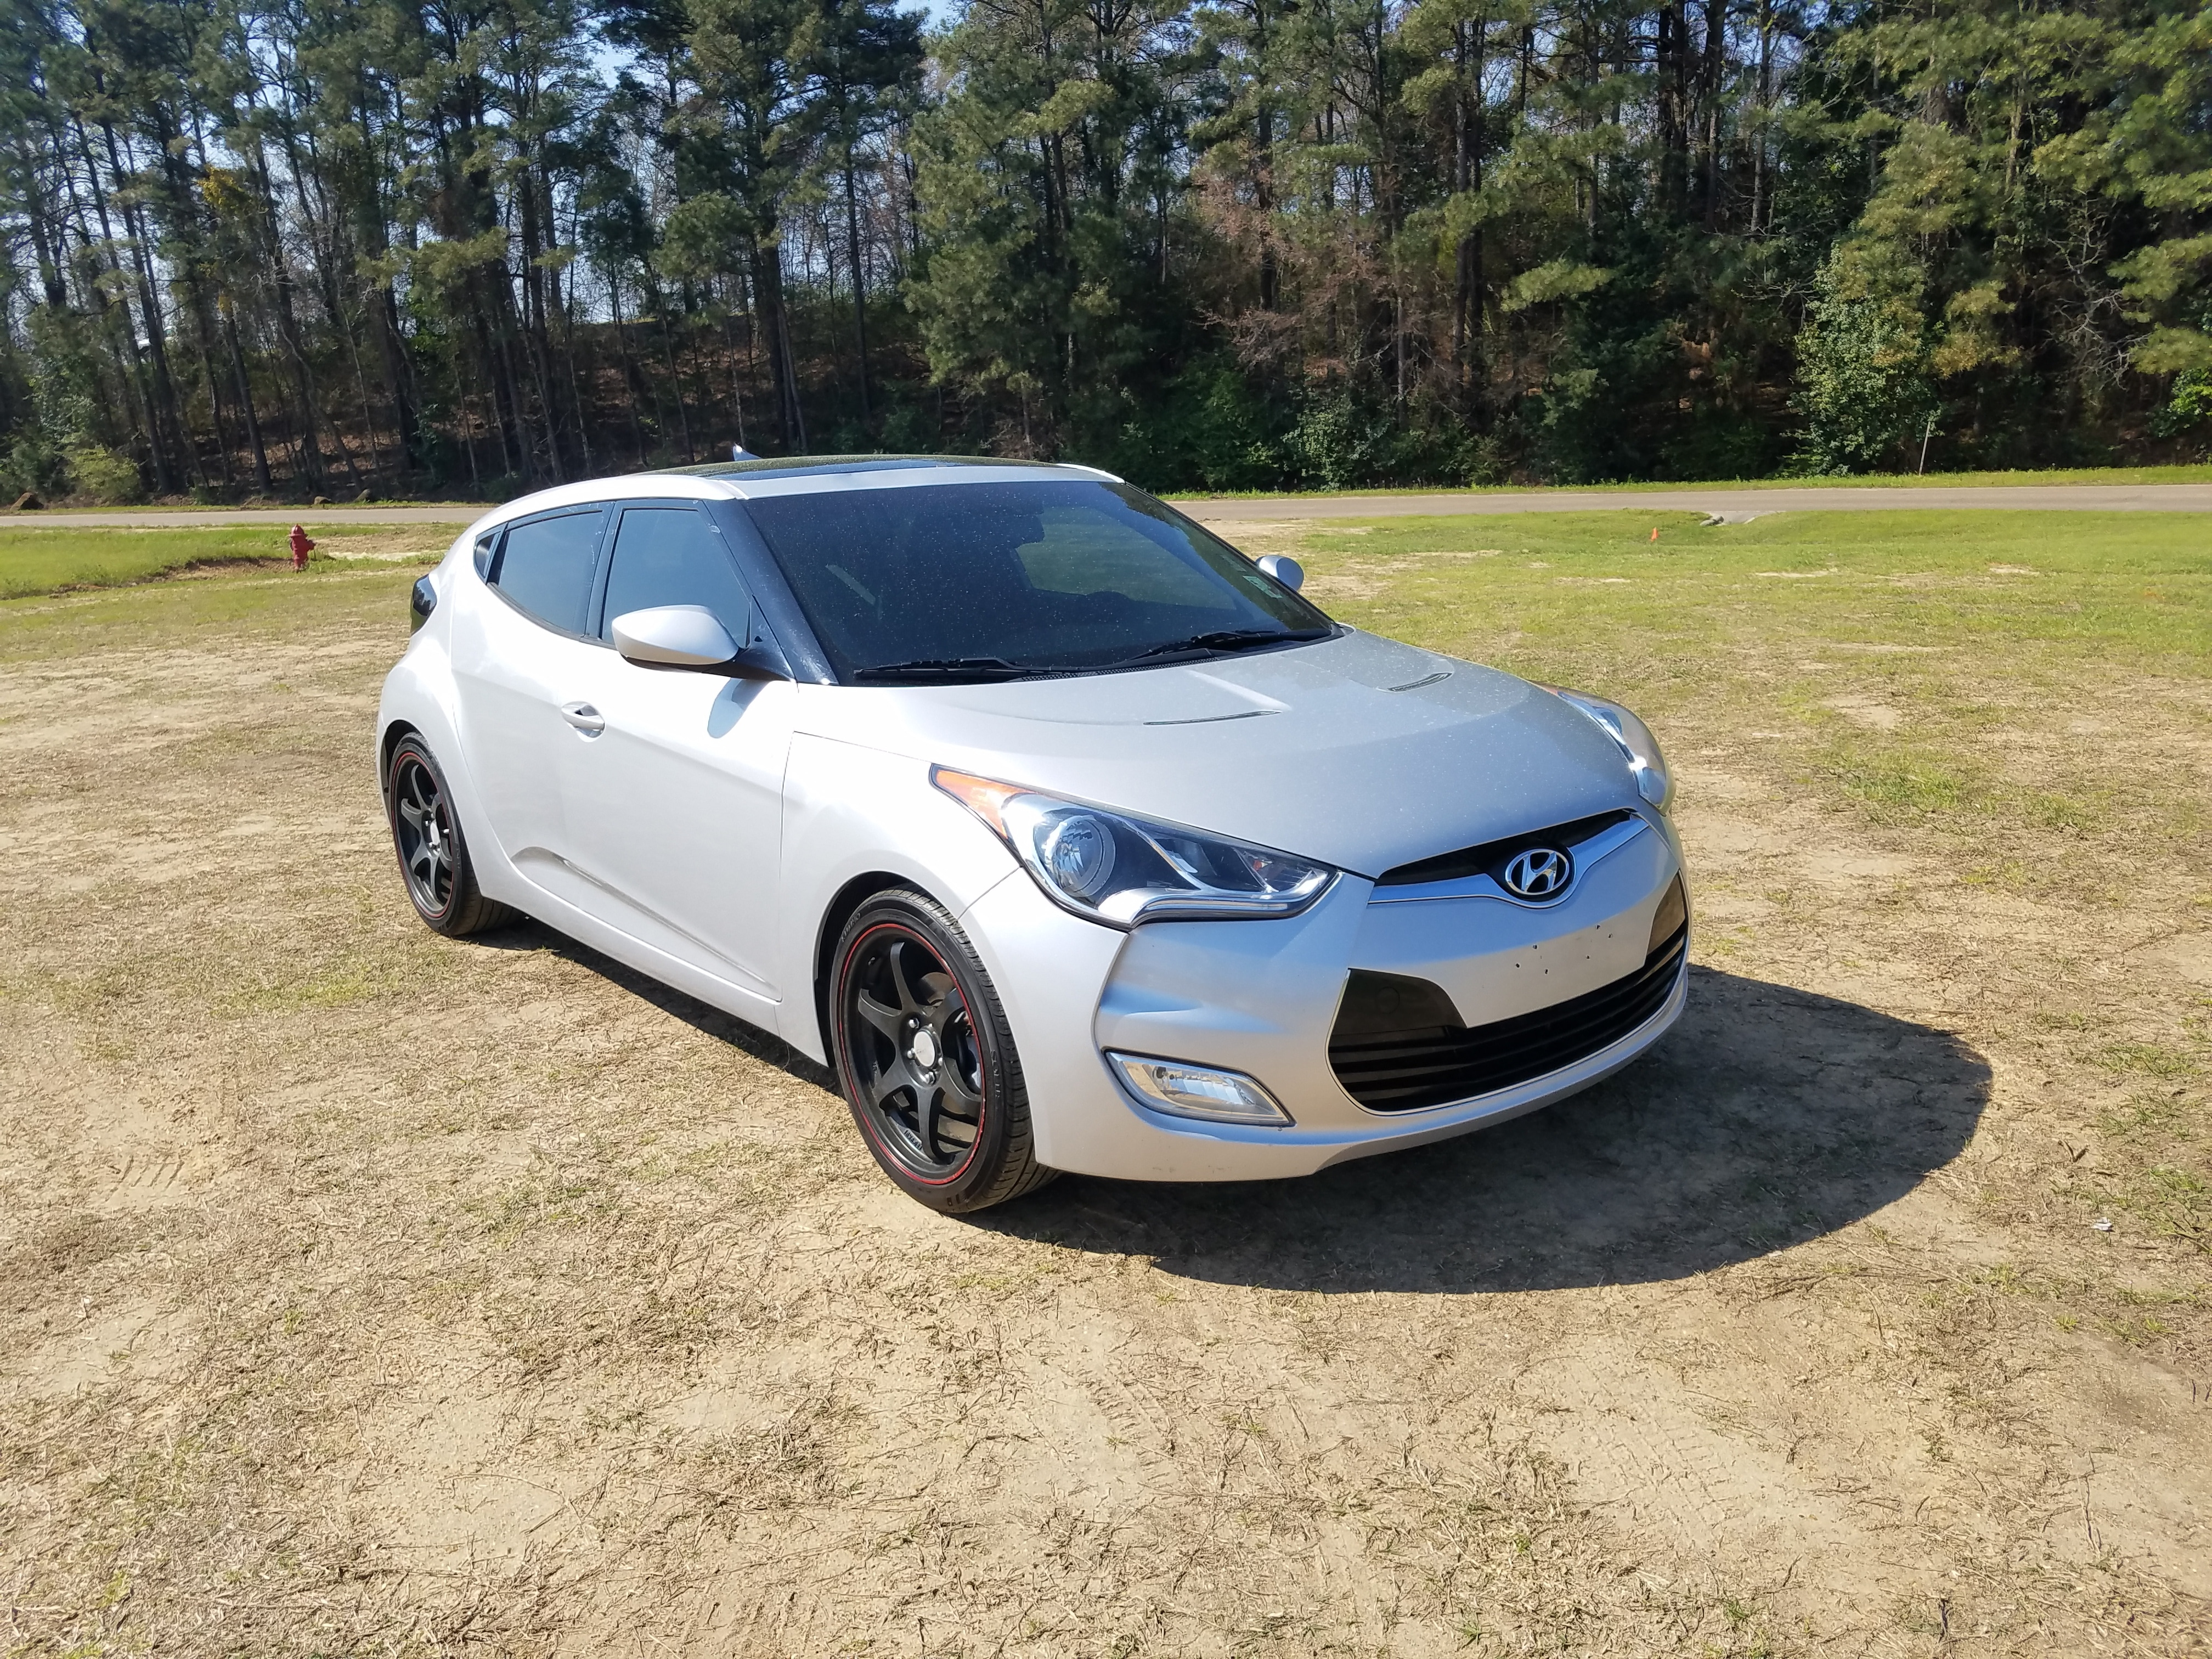 Used Coupes for Sale Elegant New and Used Coupes for Sale In Monroe Louisiana La